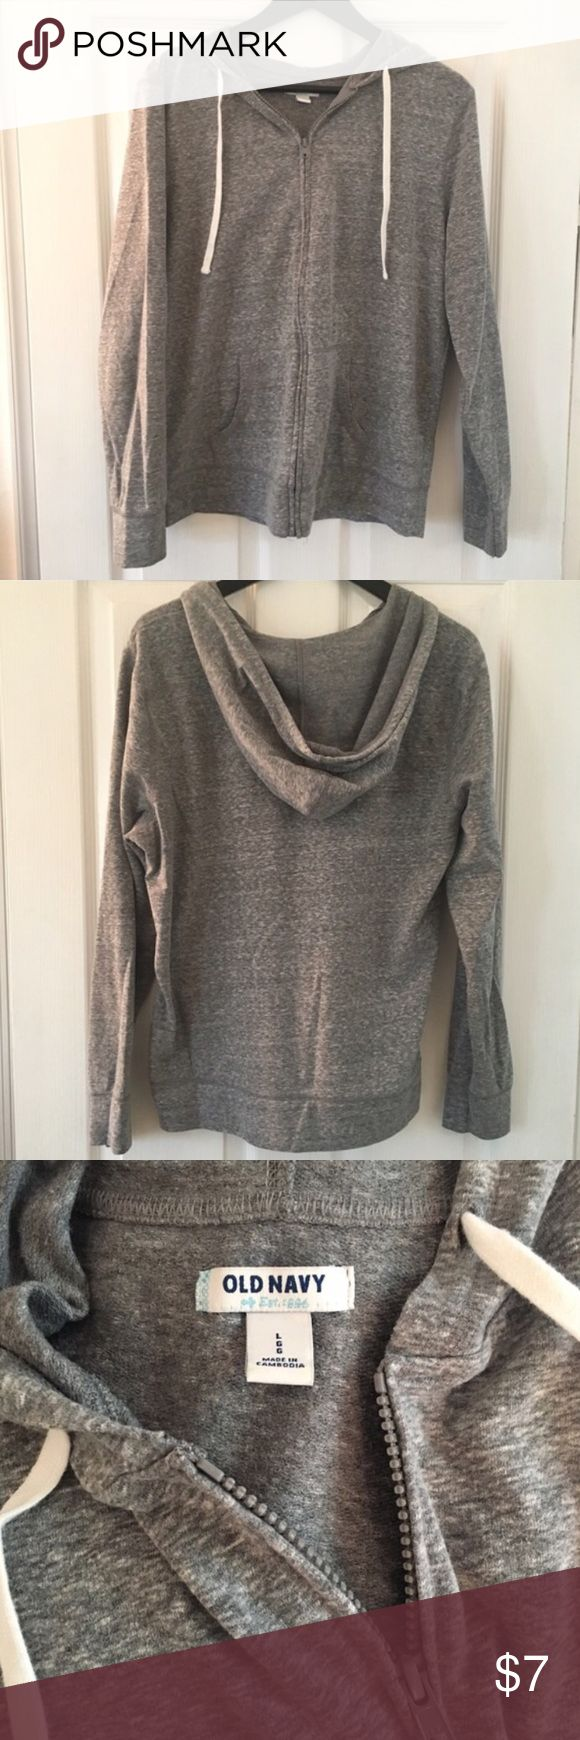 Relisting: Old Navy gray zip-up Women's size large lightweight cotton gray zip-up hoodie from Old Navy. Great condition, zipper works perfectly. Sleeves are on the shorter side. Old Navy Tops Sweatshirts & Hoodies